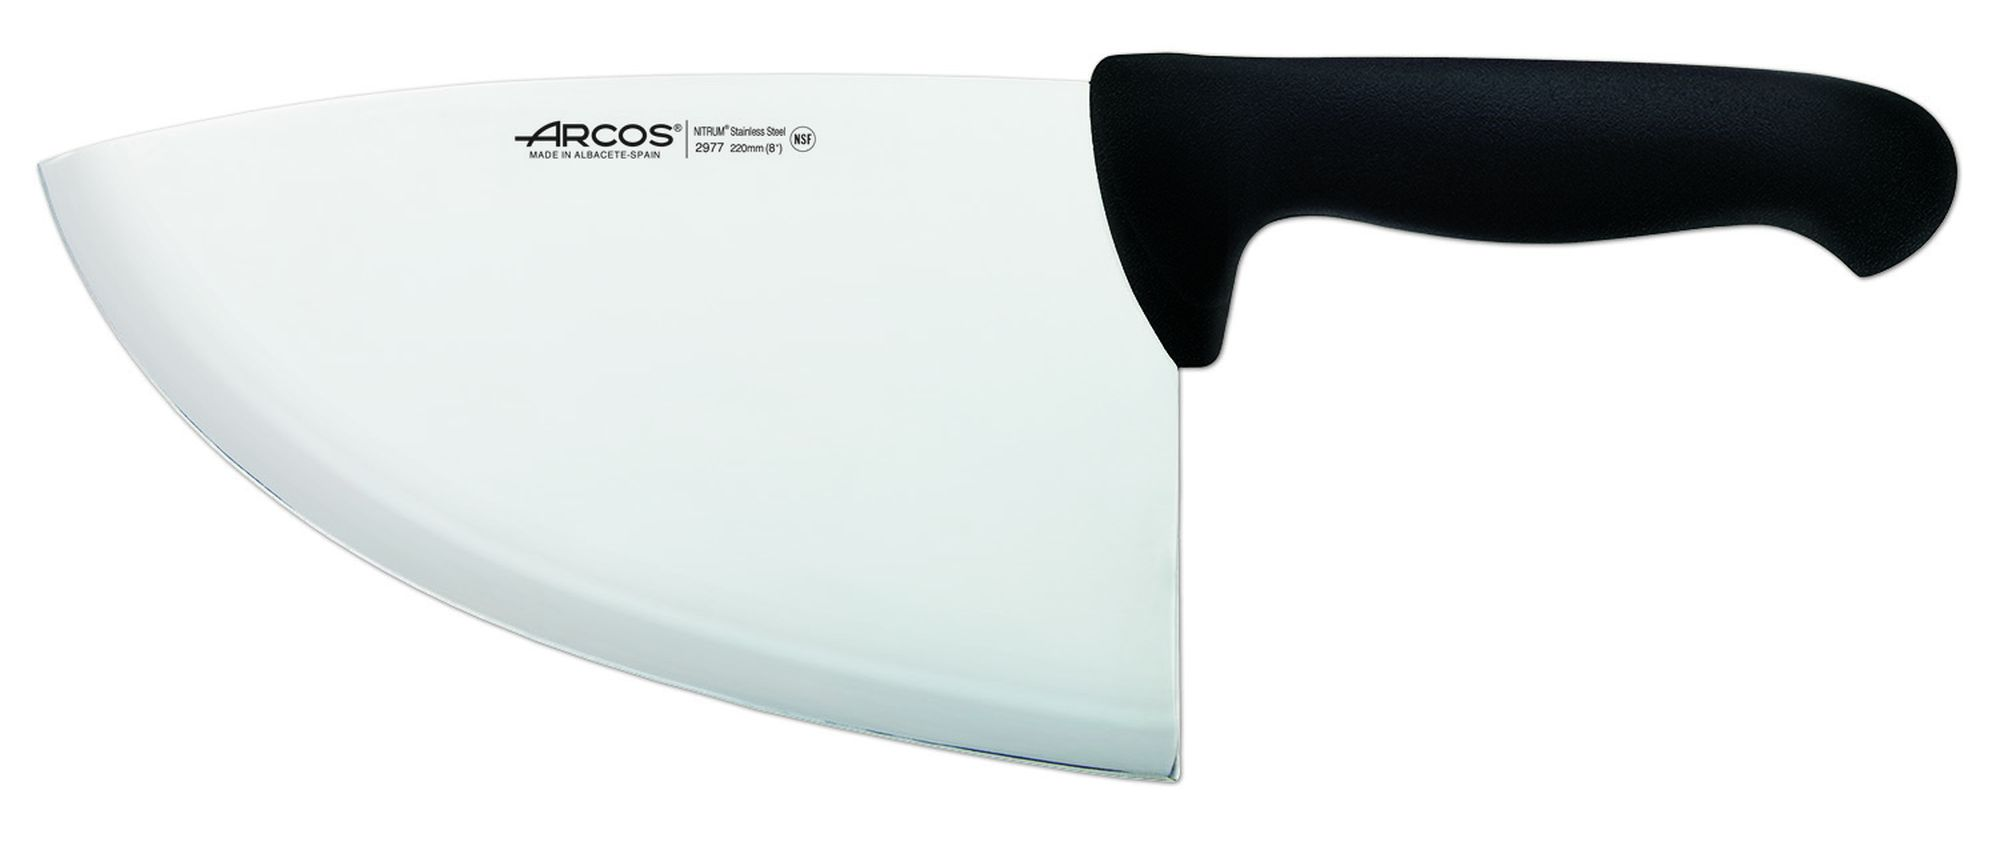 Cleaver Arcos ref.: 297725